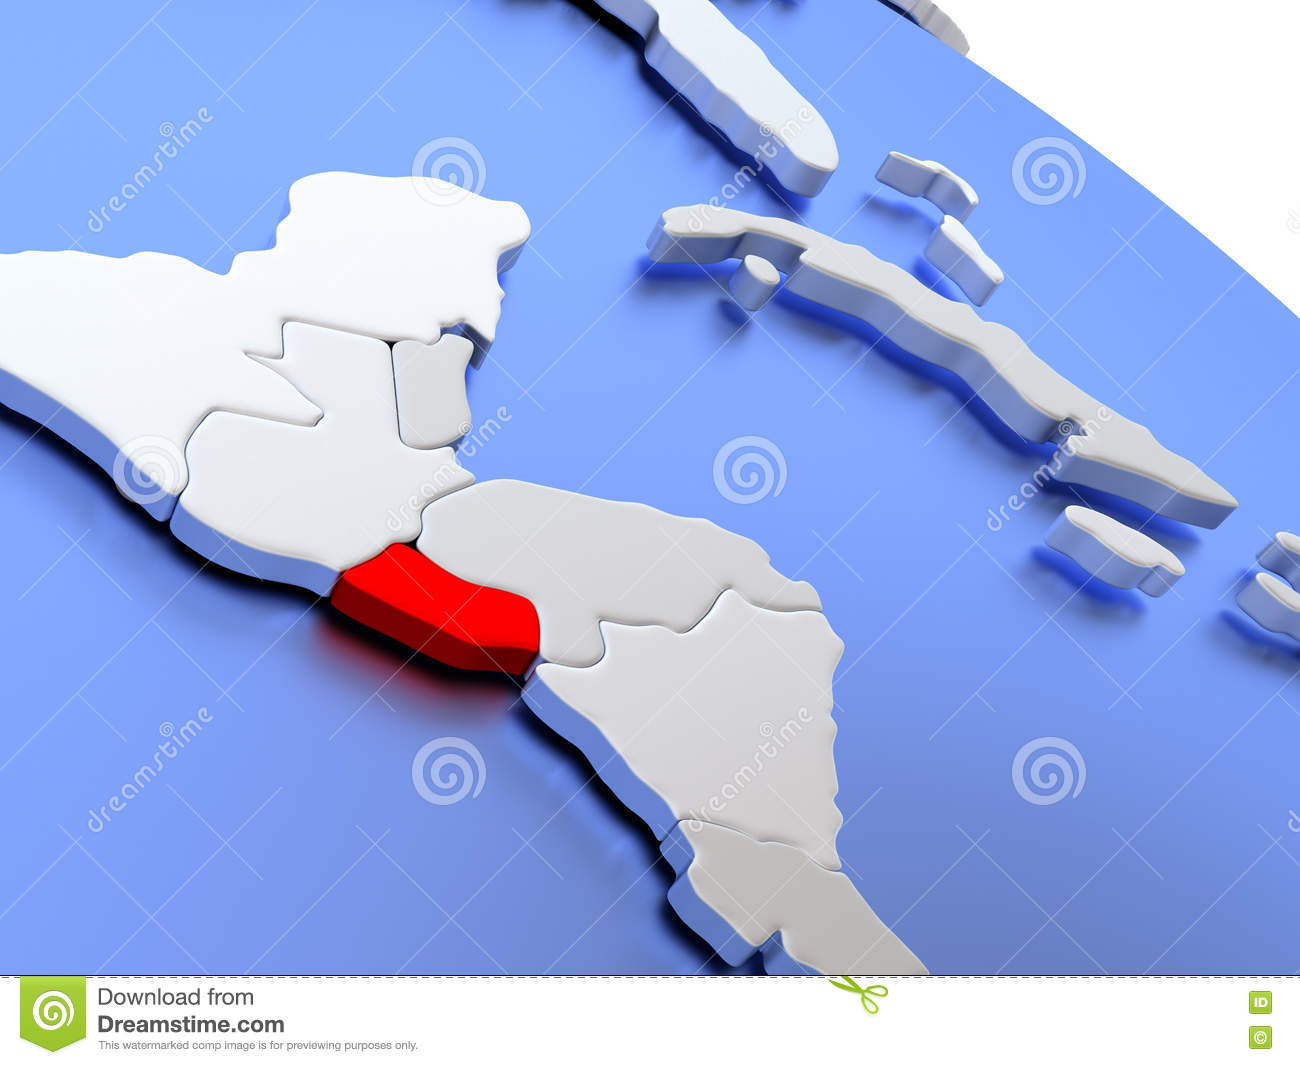 El Salvador on world map stock illustration Image of republic